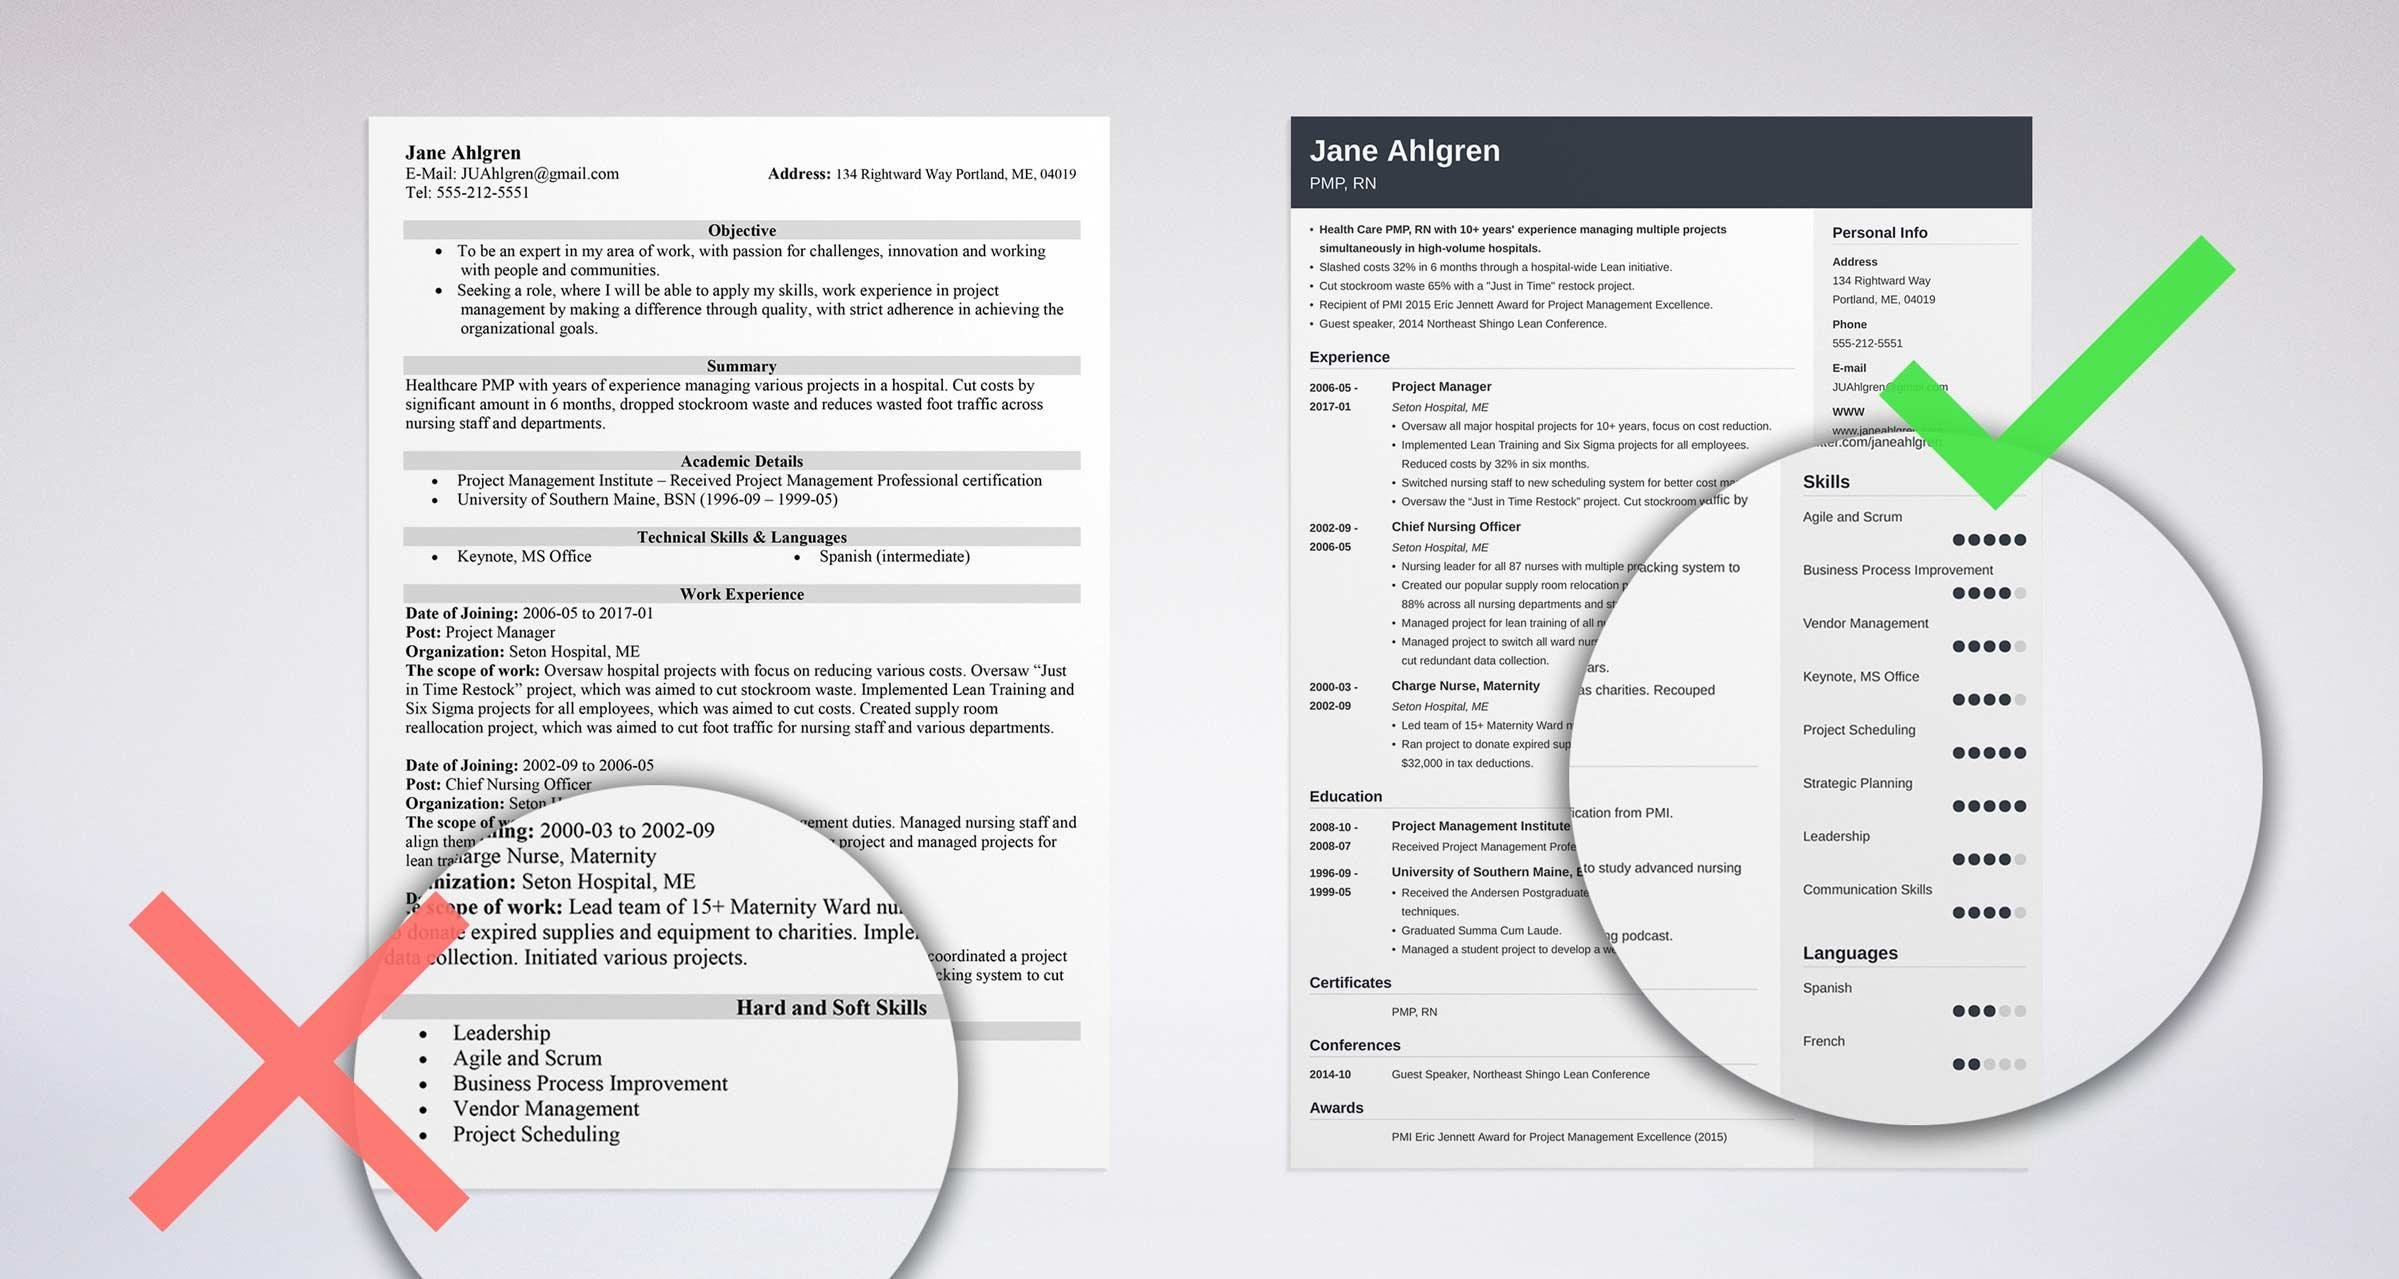 best computer skills for resume software employers literate sample on resume1 indeed Resume Computer Literate Resume Sample